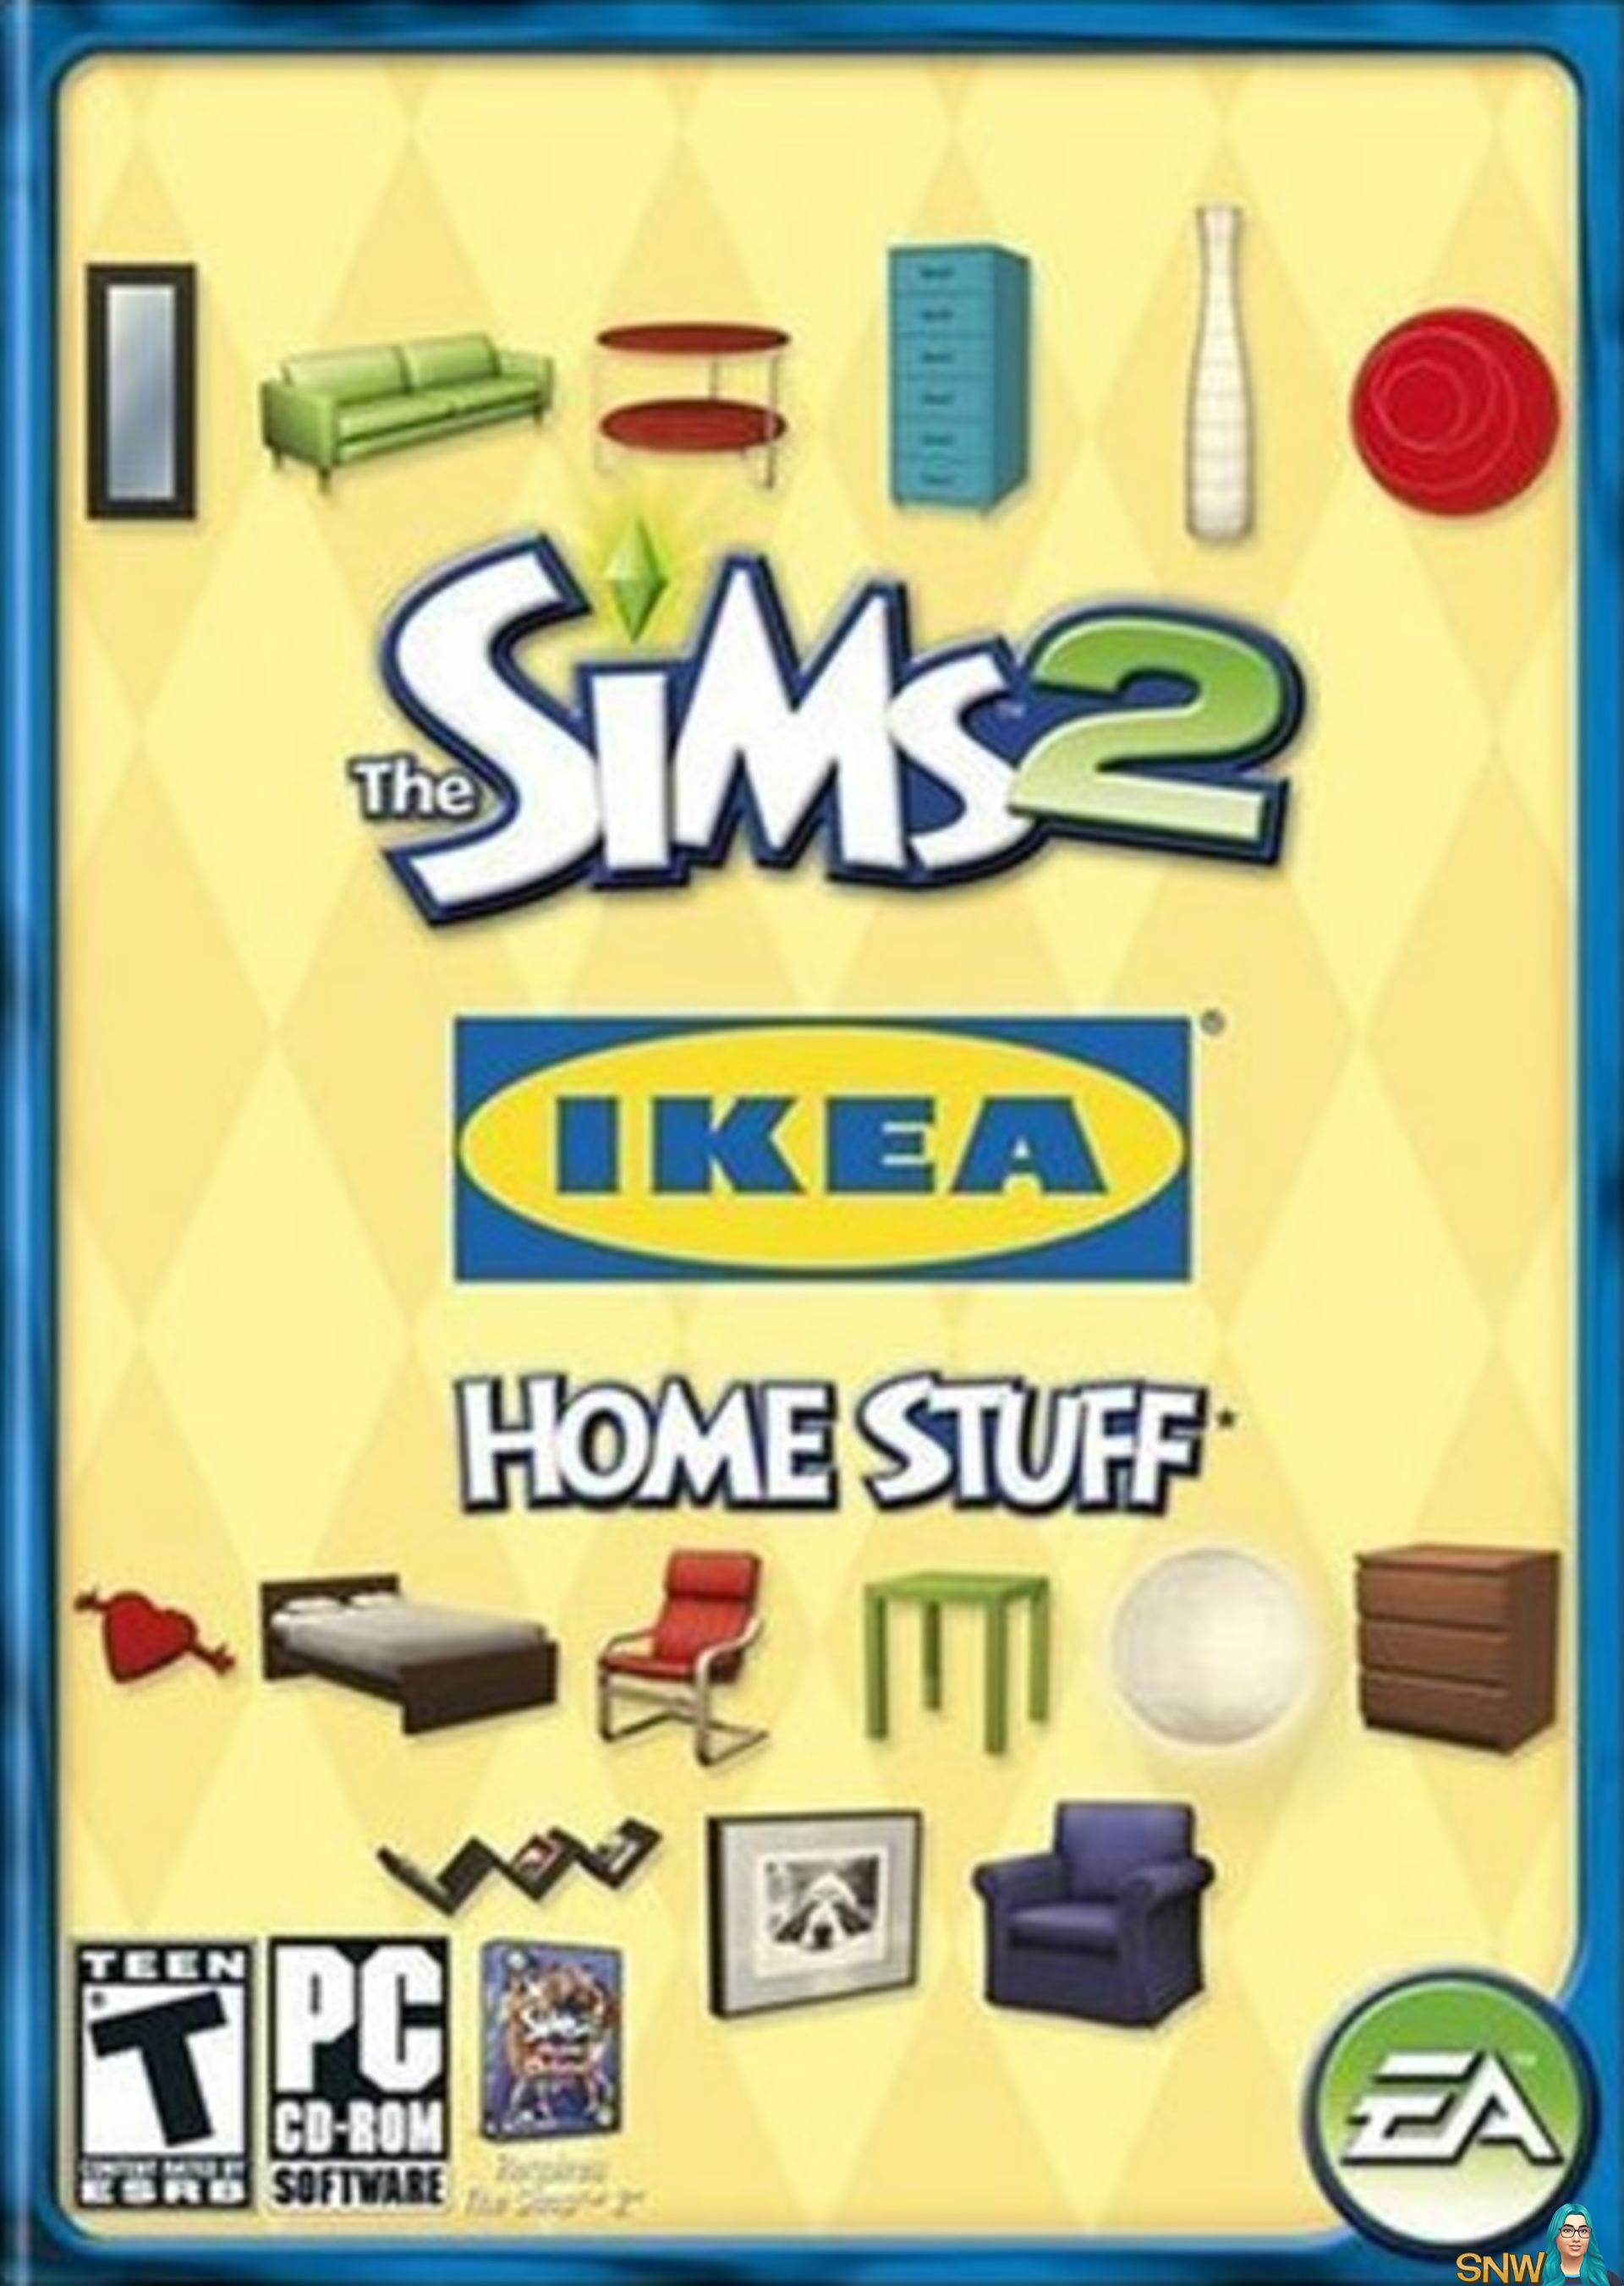 The Sims 2: IKEA Home Stuff   SNW   SimsNetwork.com